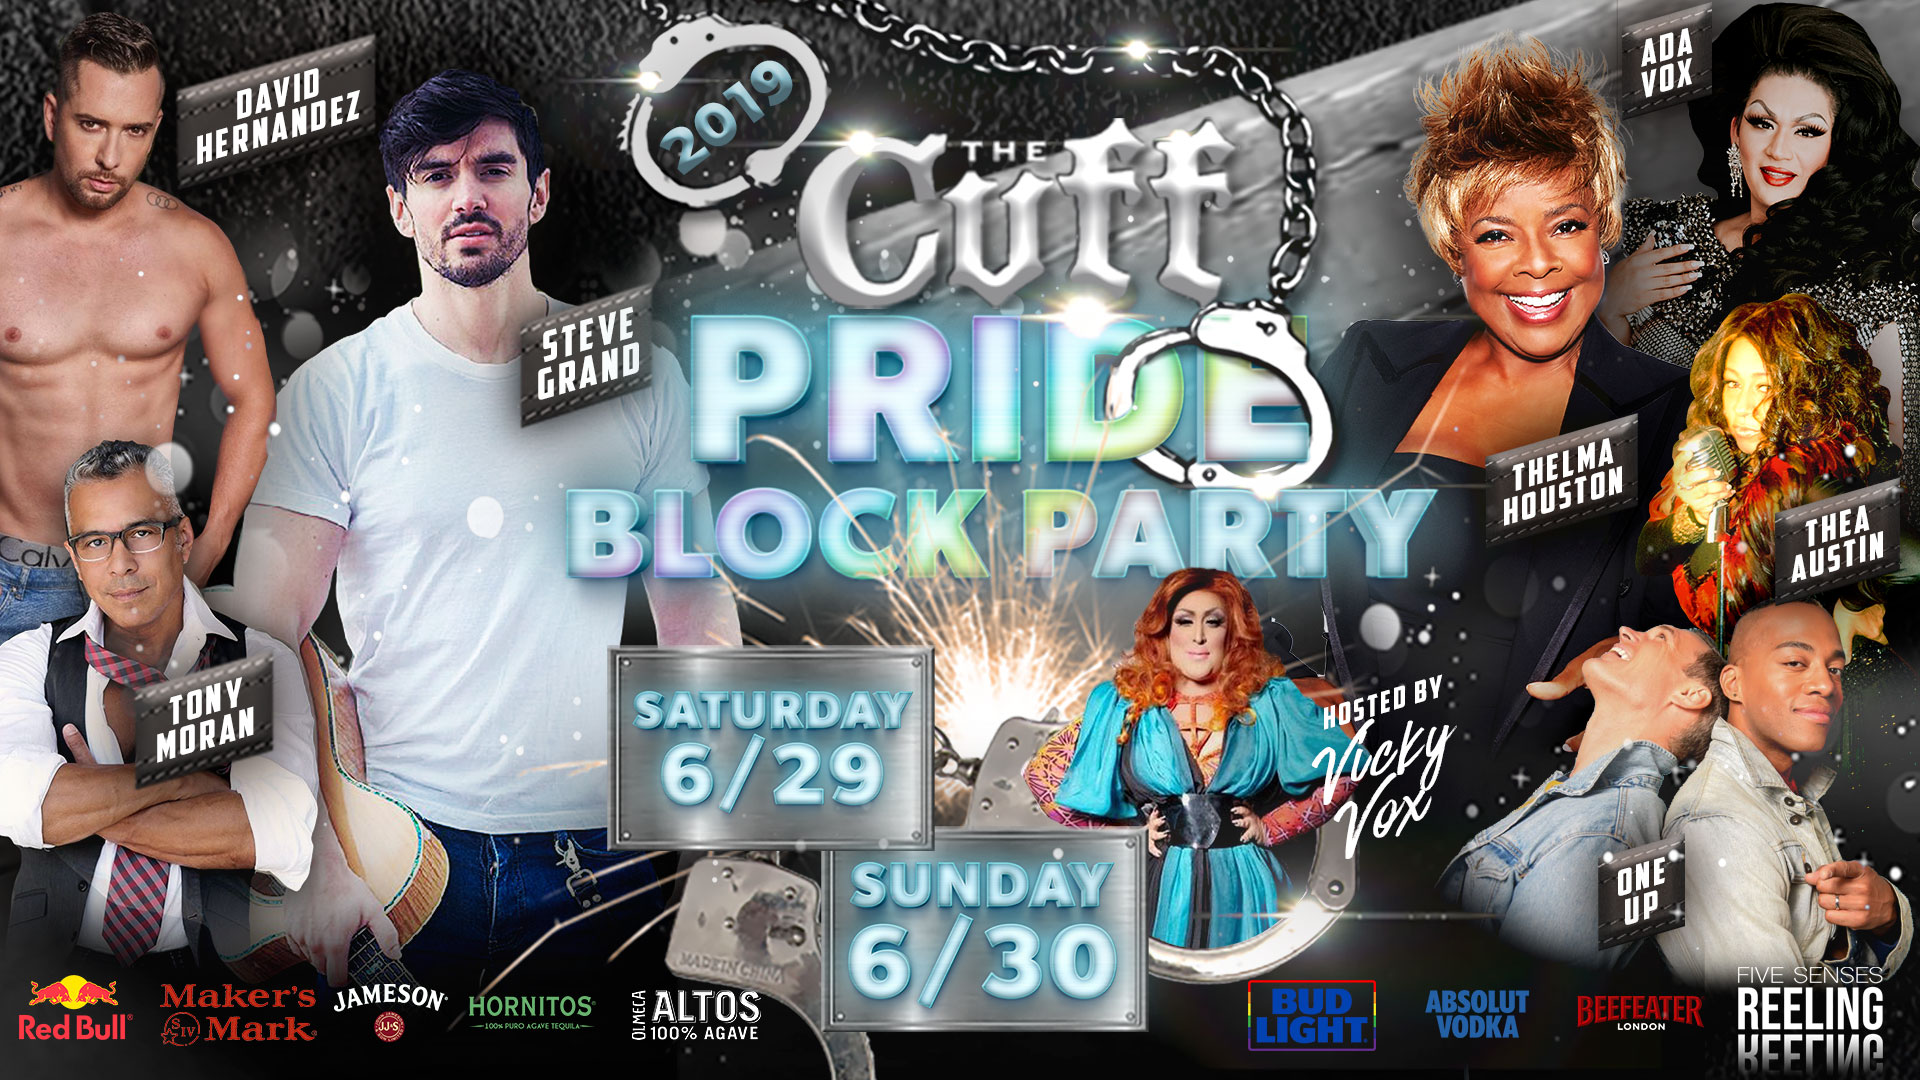 +The-Cuff-Pride-Block-Party-1920x1080-2-Day.jpg